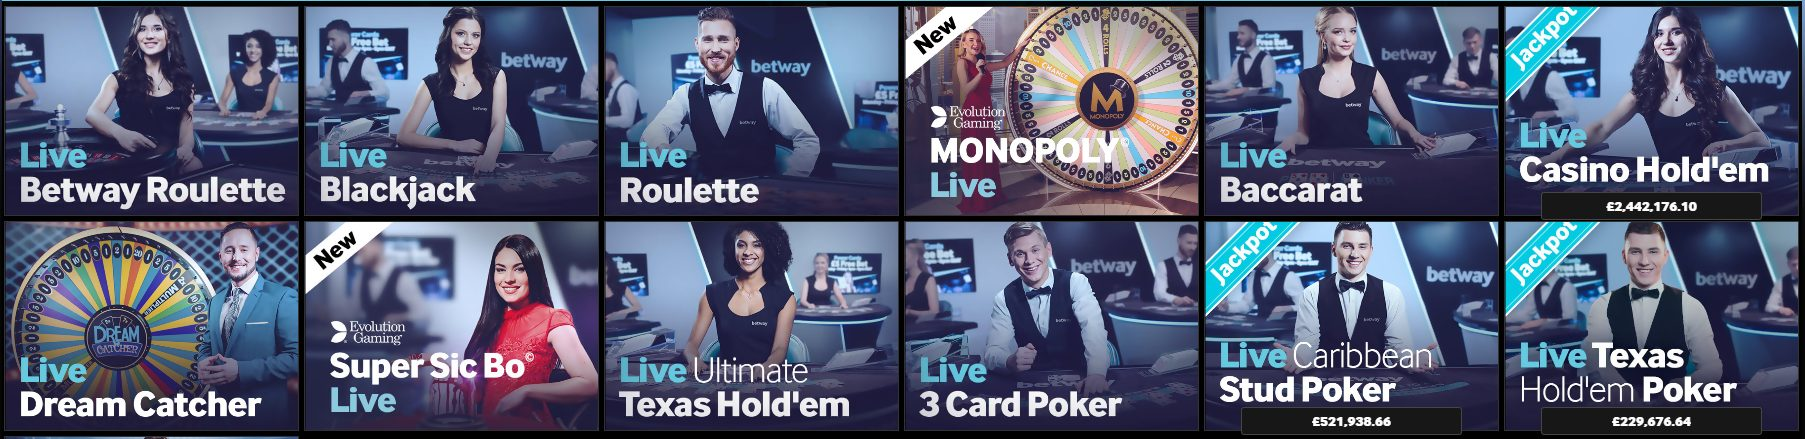 live-online-casino-games